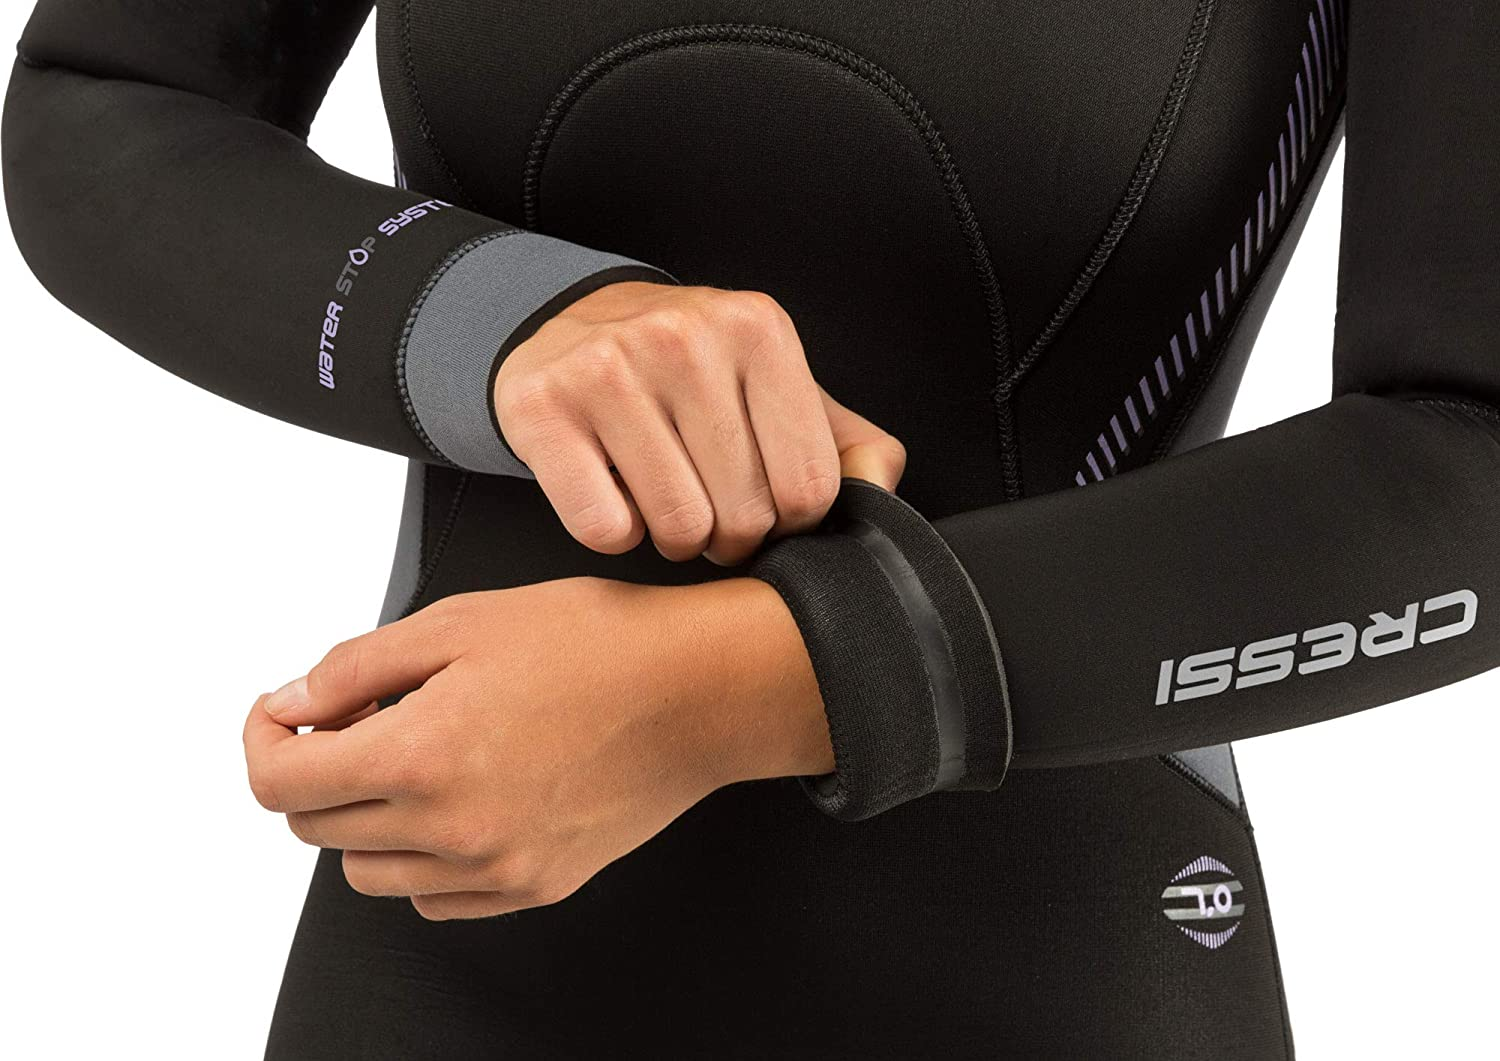 Cressi Mens /& Ladies Full Wetsuit Back-Zip for Scuba Diving /& Water Activities Fast 7mm designed in Italy